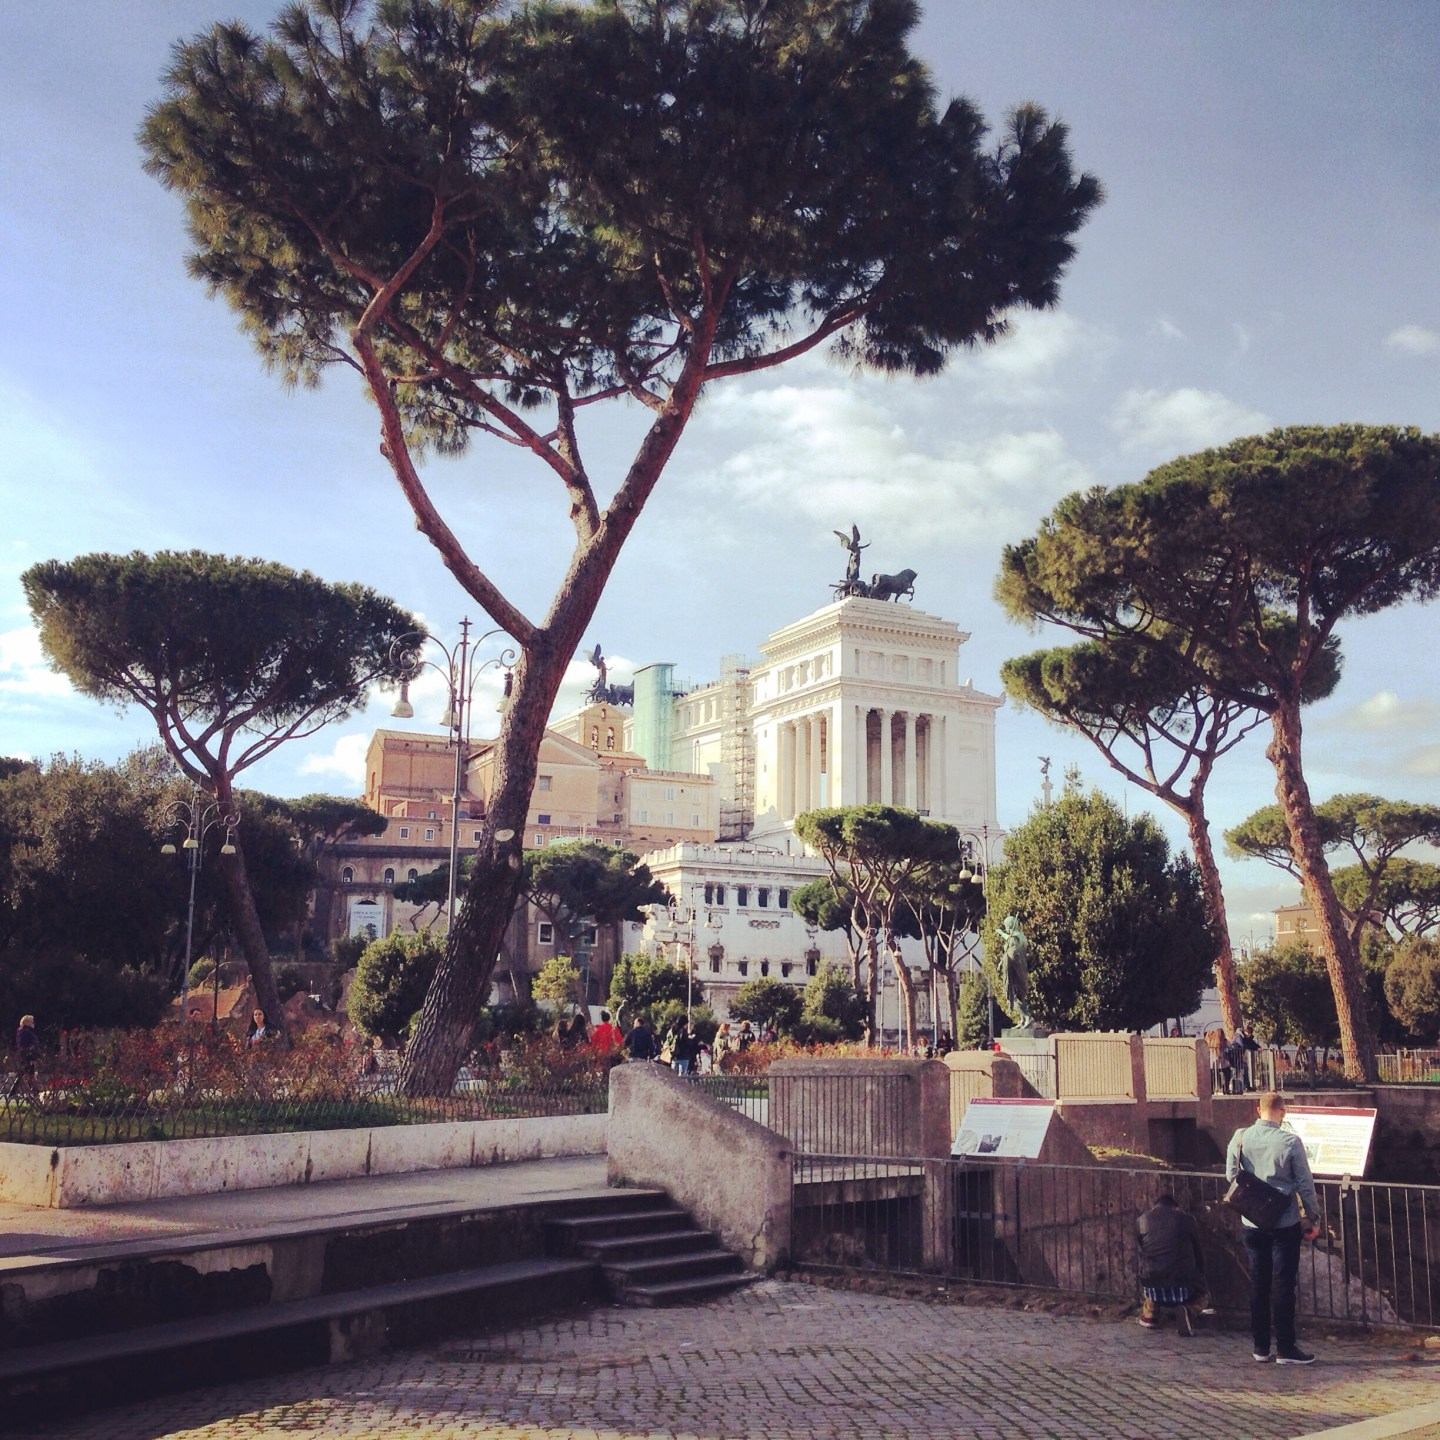 48 hours in Rome: Pasta, Pizza & Aperol Spritz